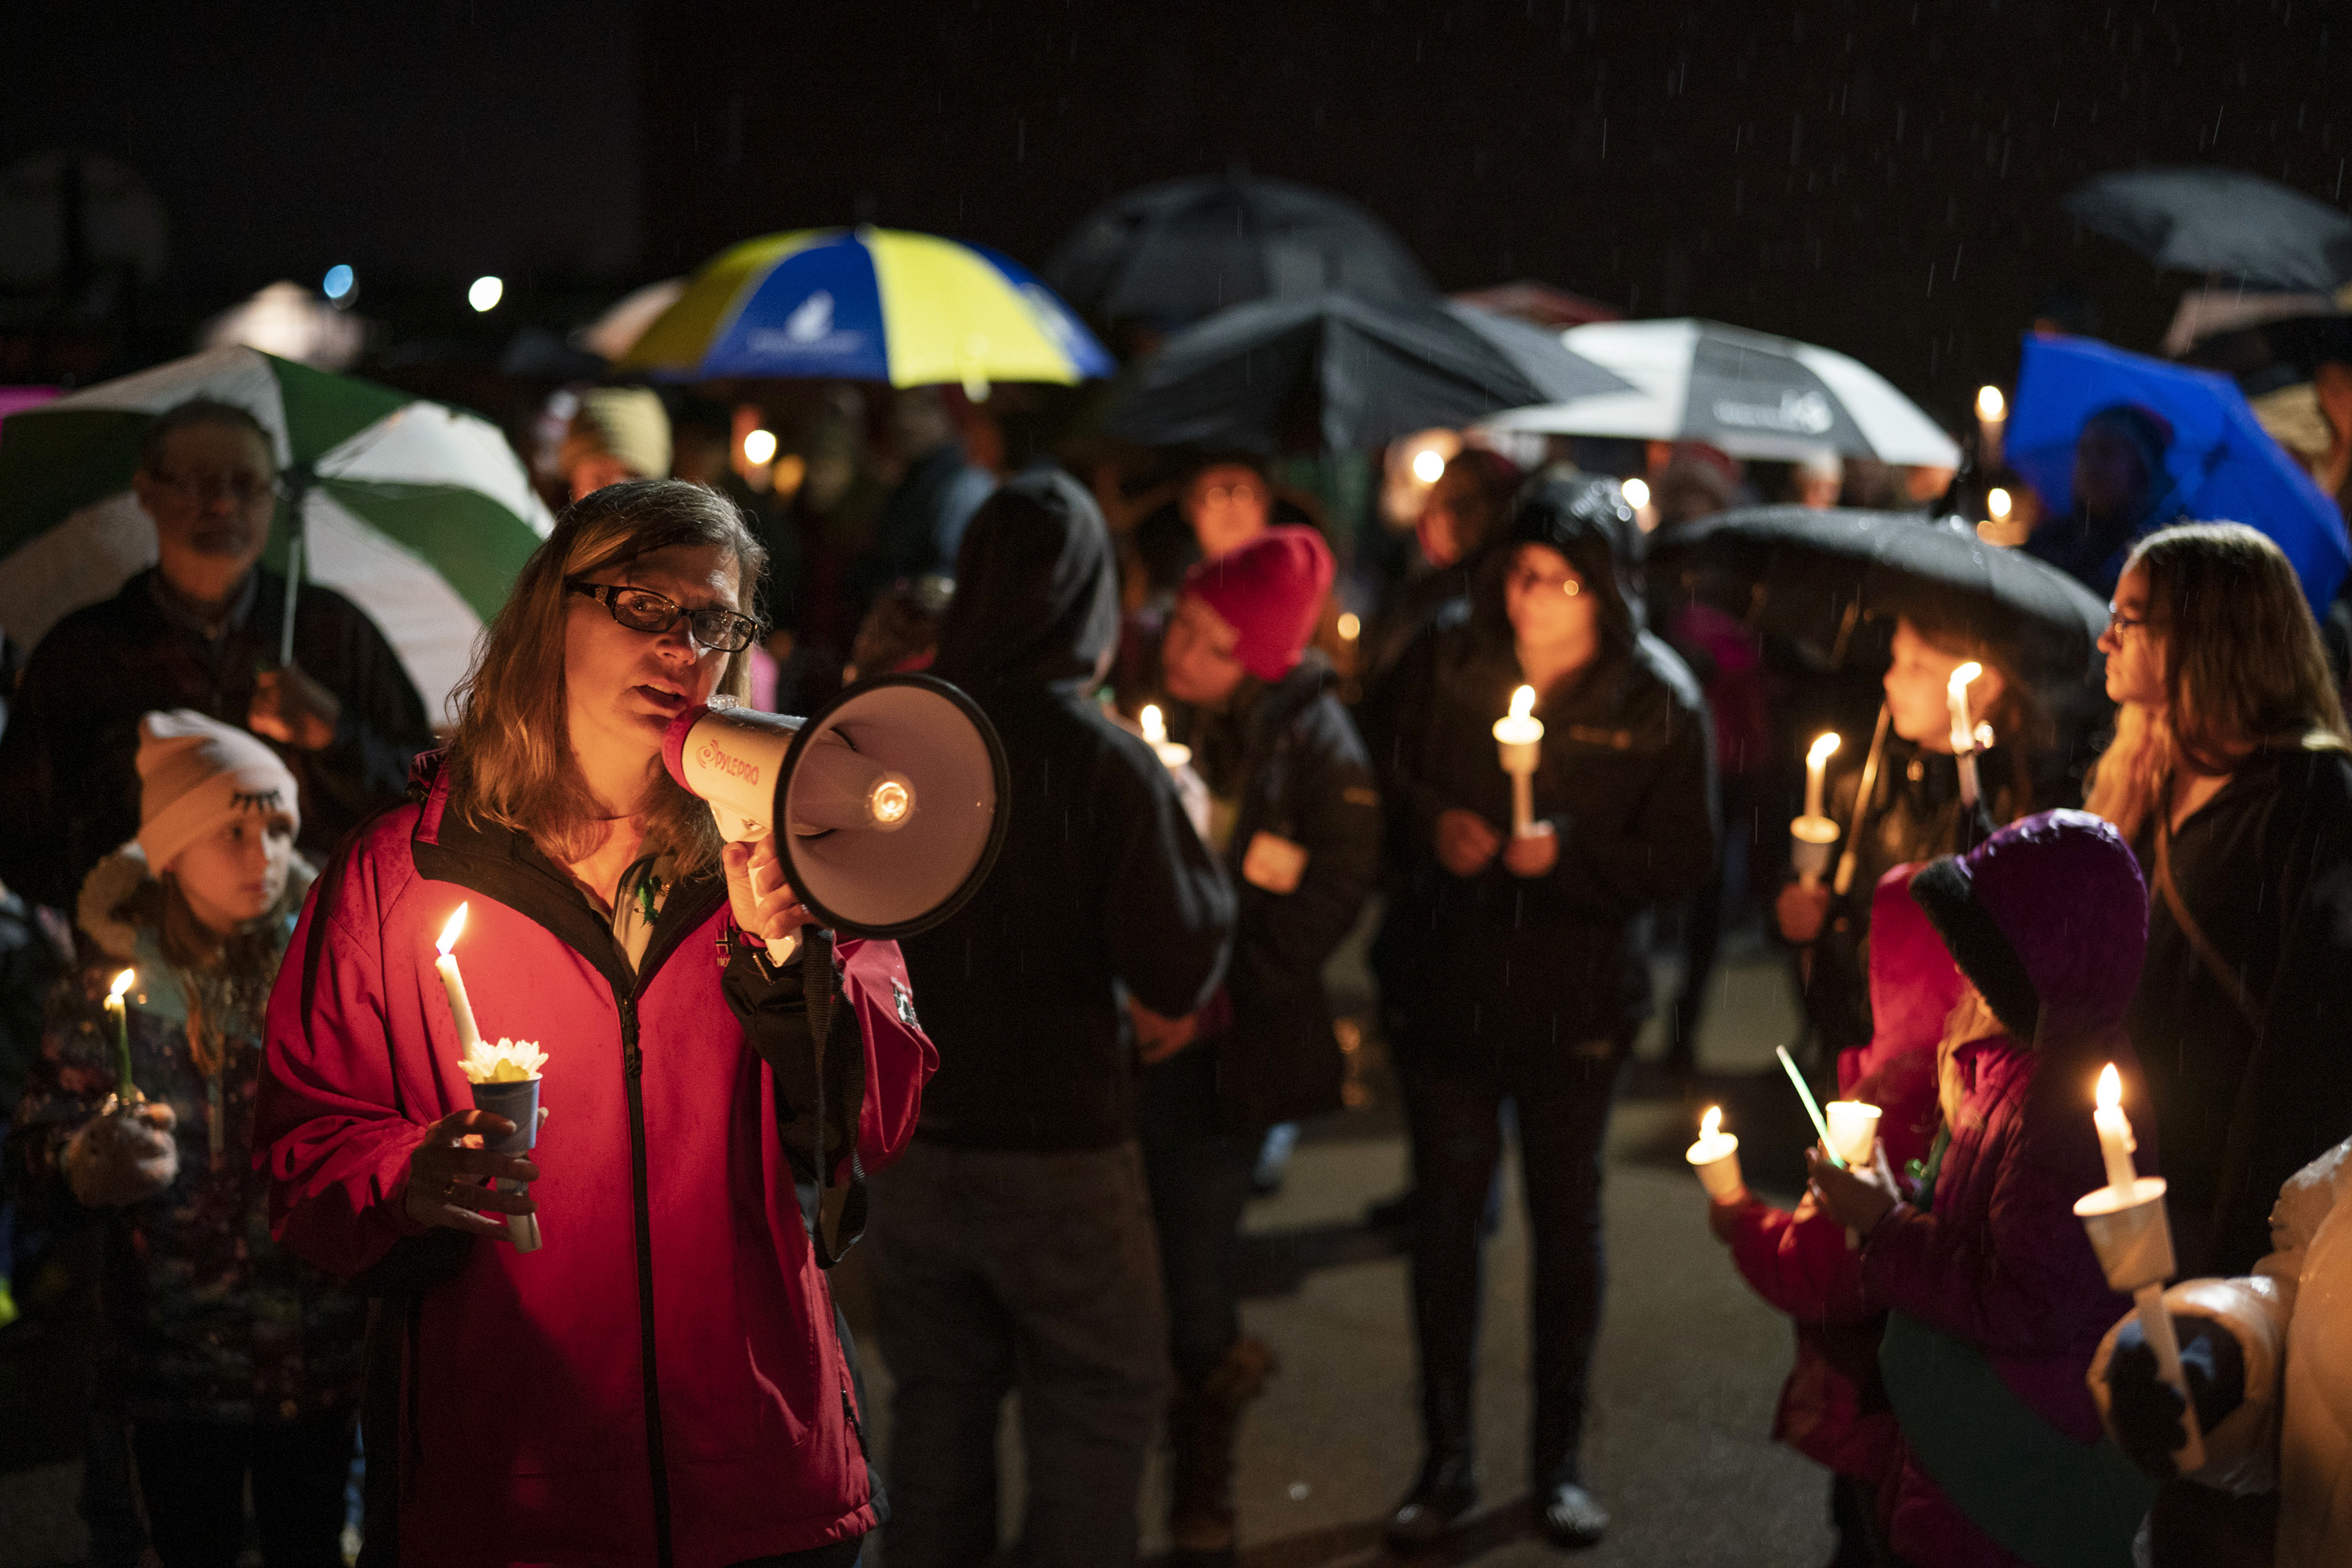 Sherri Jasper, a Girl Scout board member and counselor at Halmstad Elementary School, leads the program for a candlelight vigil at the school in Chippewa Falls, Wis., Sunday evening, Nov. 4, 2018. The western Wisconsin community on Sunday was grieving the deaths of three Girl Scouts and a parent who were collecting trash Saturday along a rural highway when police say a pickup truck veered off the road and hit them before speeding away. The 21-year-old driver, Colten Treu of Chippewa Falls, sped off but later surrendered. He will be charged with four counts of homicide, Lake Hallie police Sgt. Daniel Sokup said. (Jeff Wheeler/Star Tribune via AP)